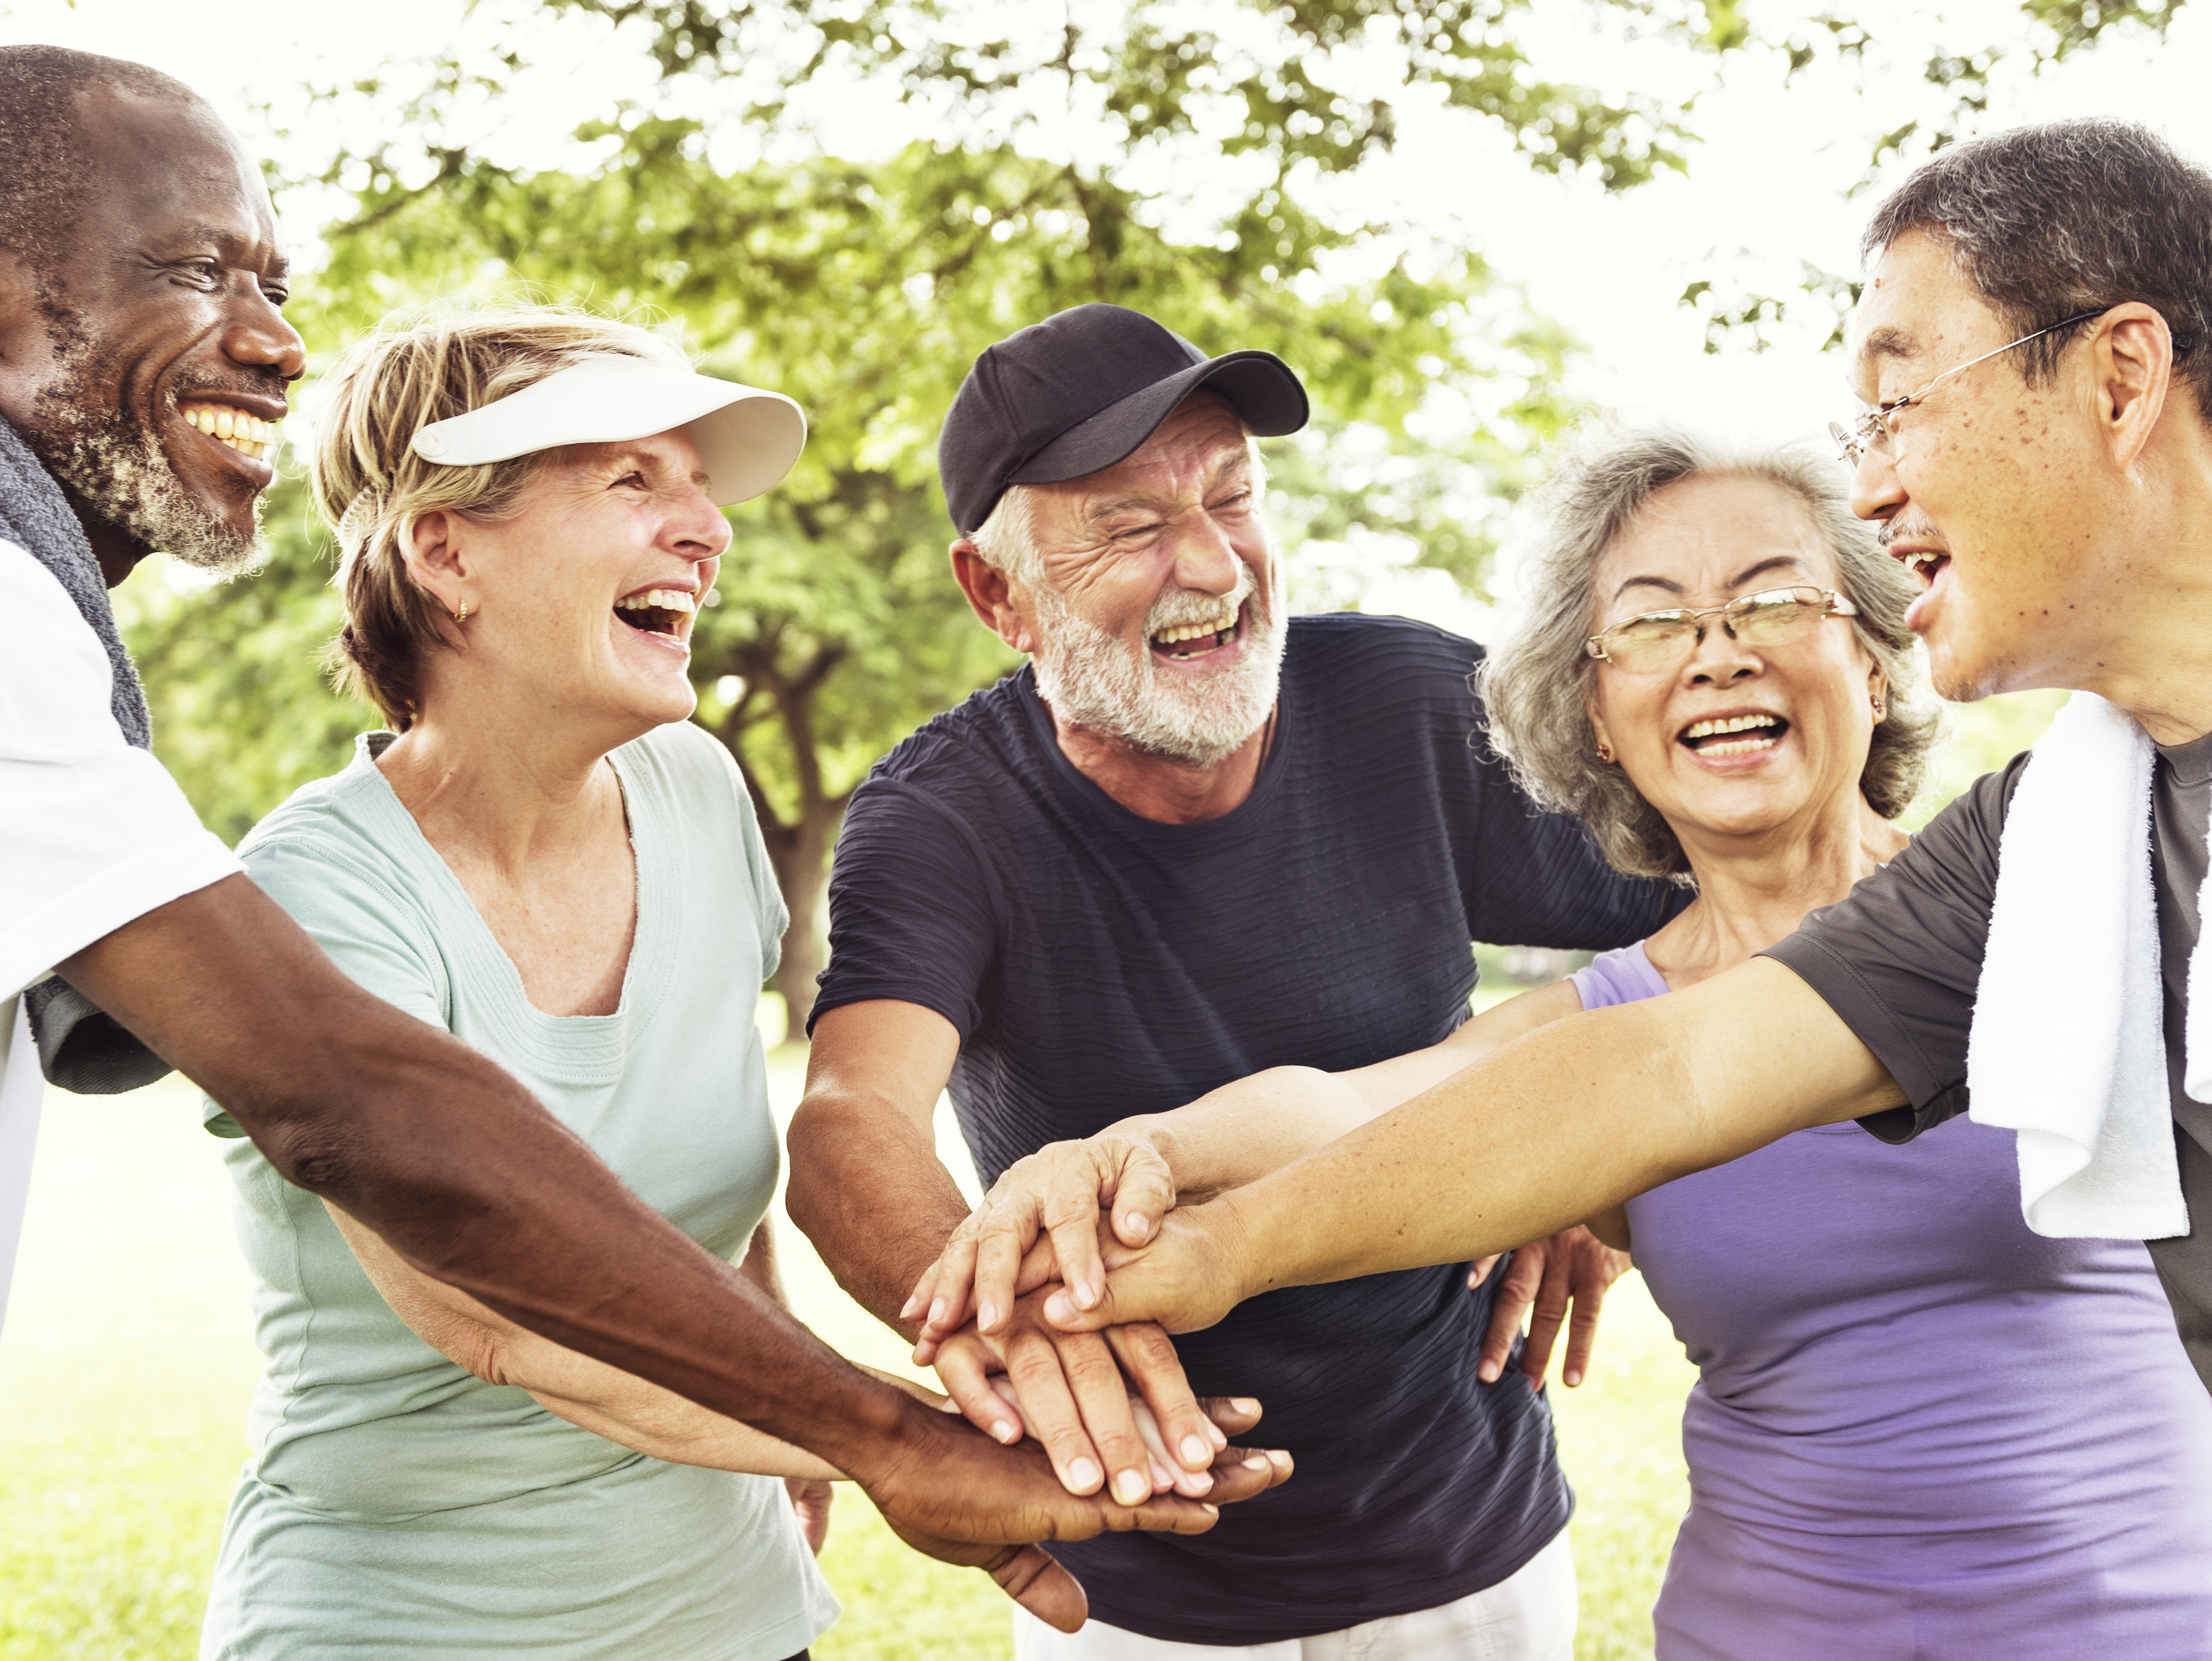 Group Of Senior Retirement Exercising Togetherness Concept.jpg